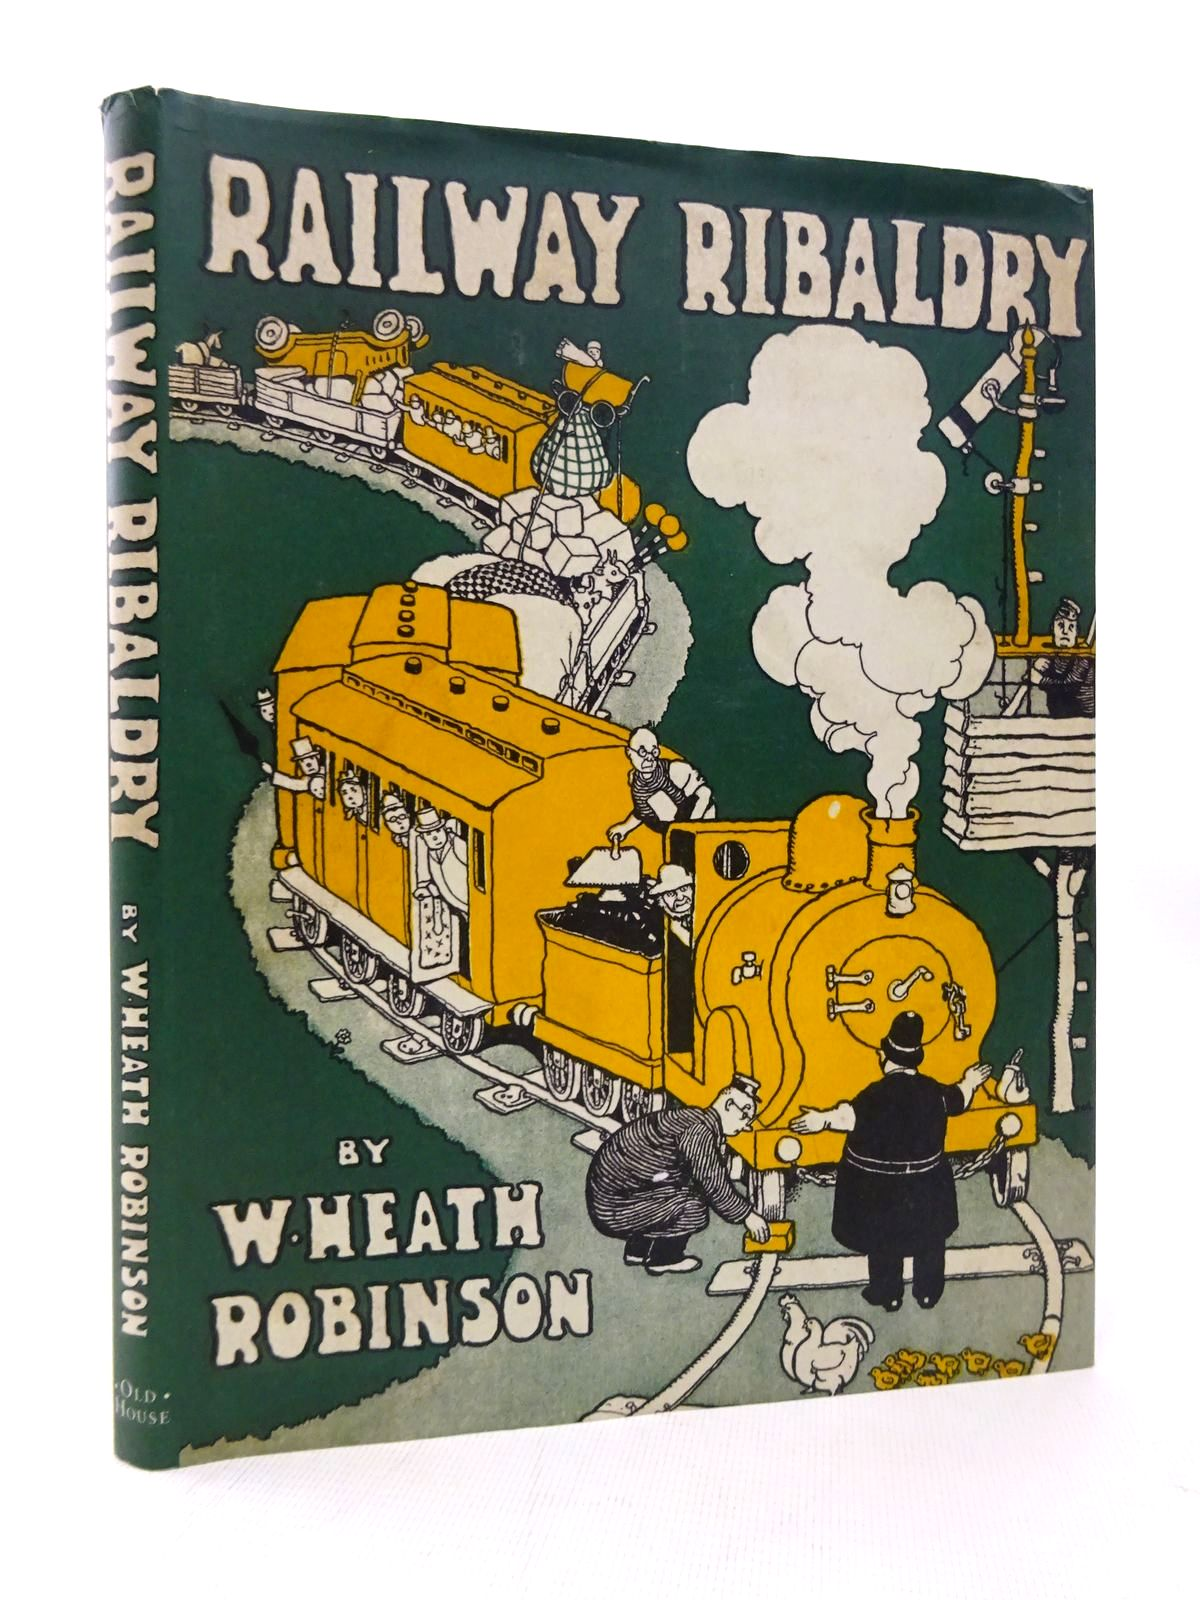 Photo of RAILWAY RIBALDRY written by Robinson, W. Heath illustrated by Robinson, W. Heath published by Old House Books (STOCK CODE: 1815525)  for sale by Stella & Rose's Books